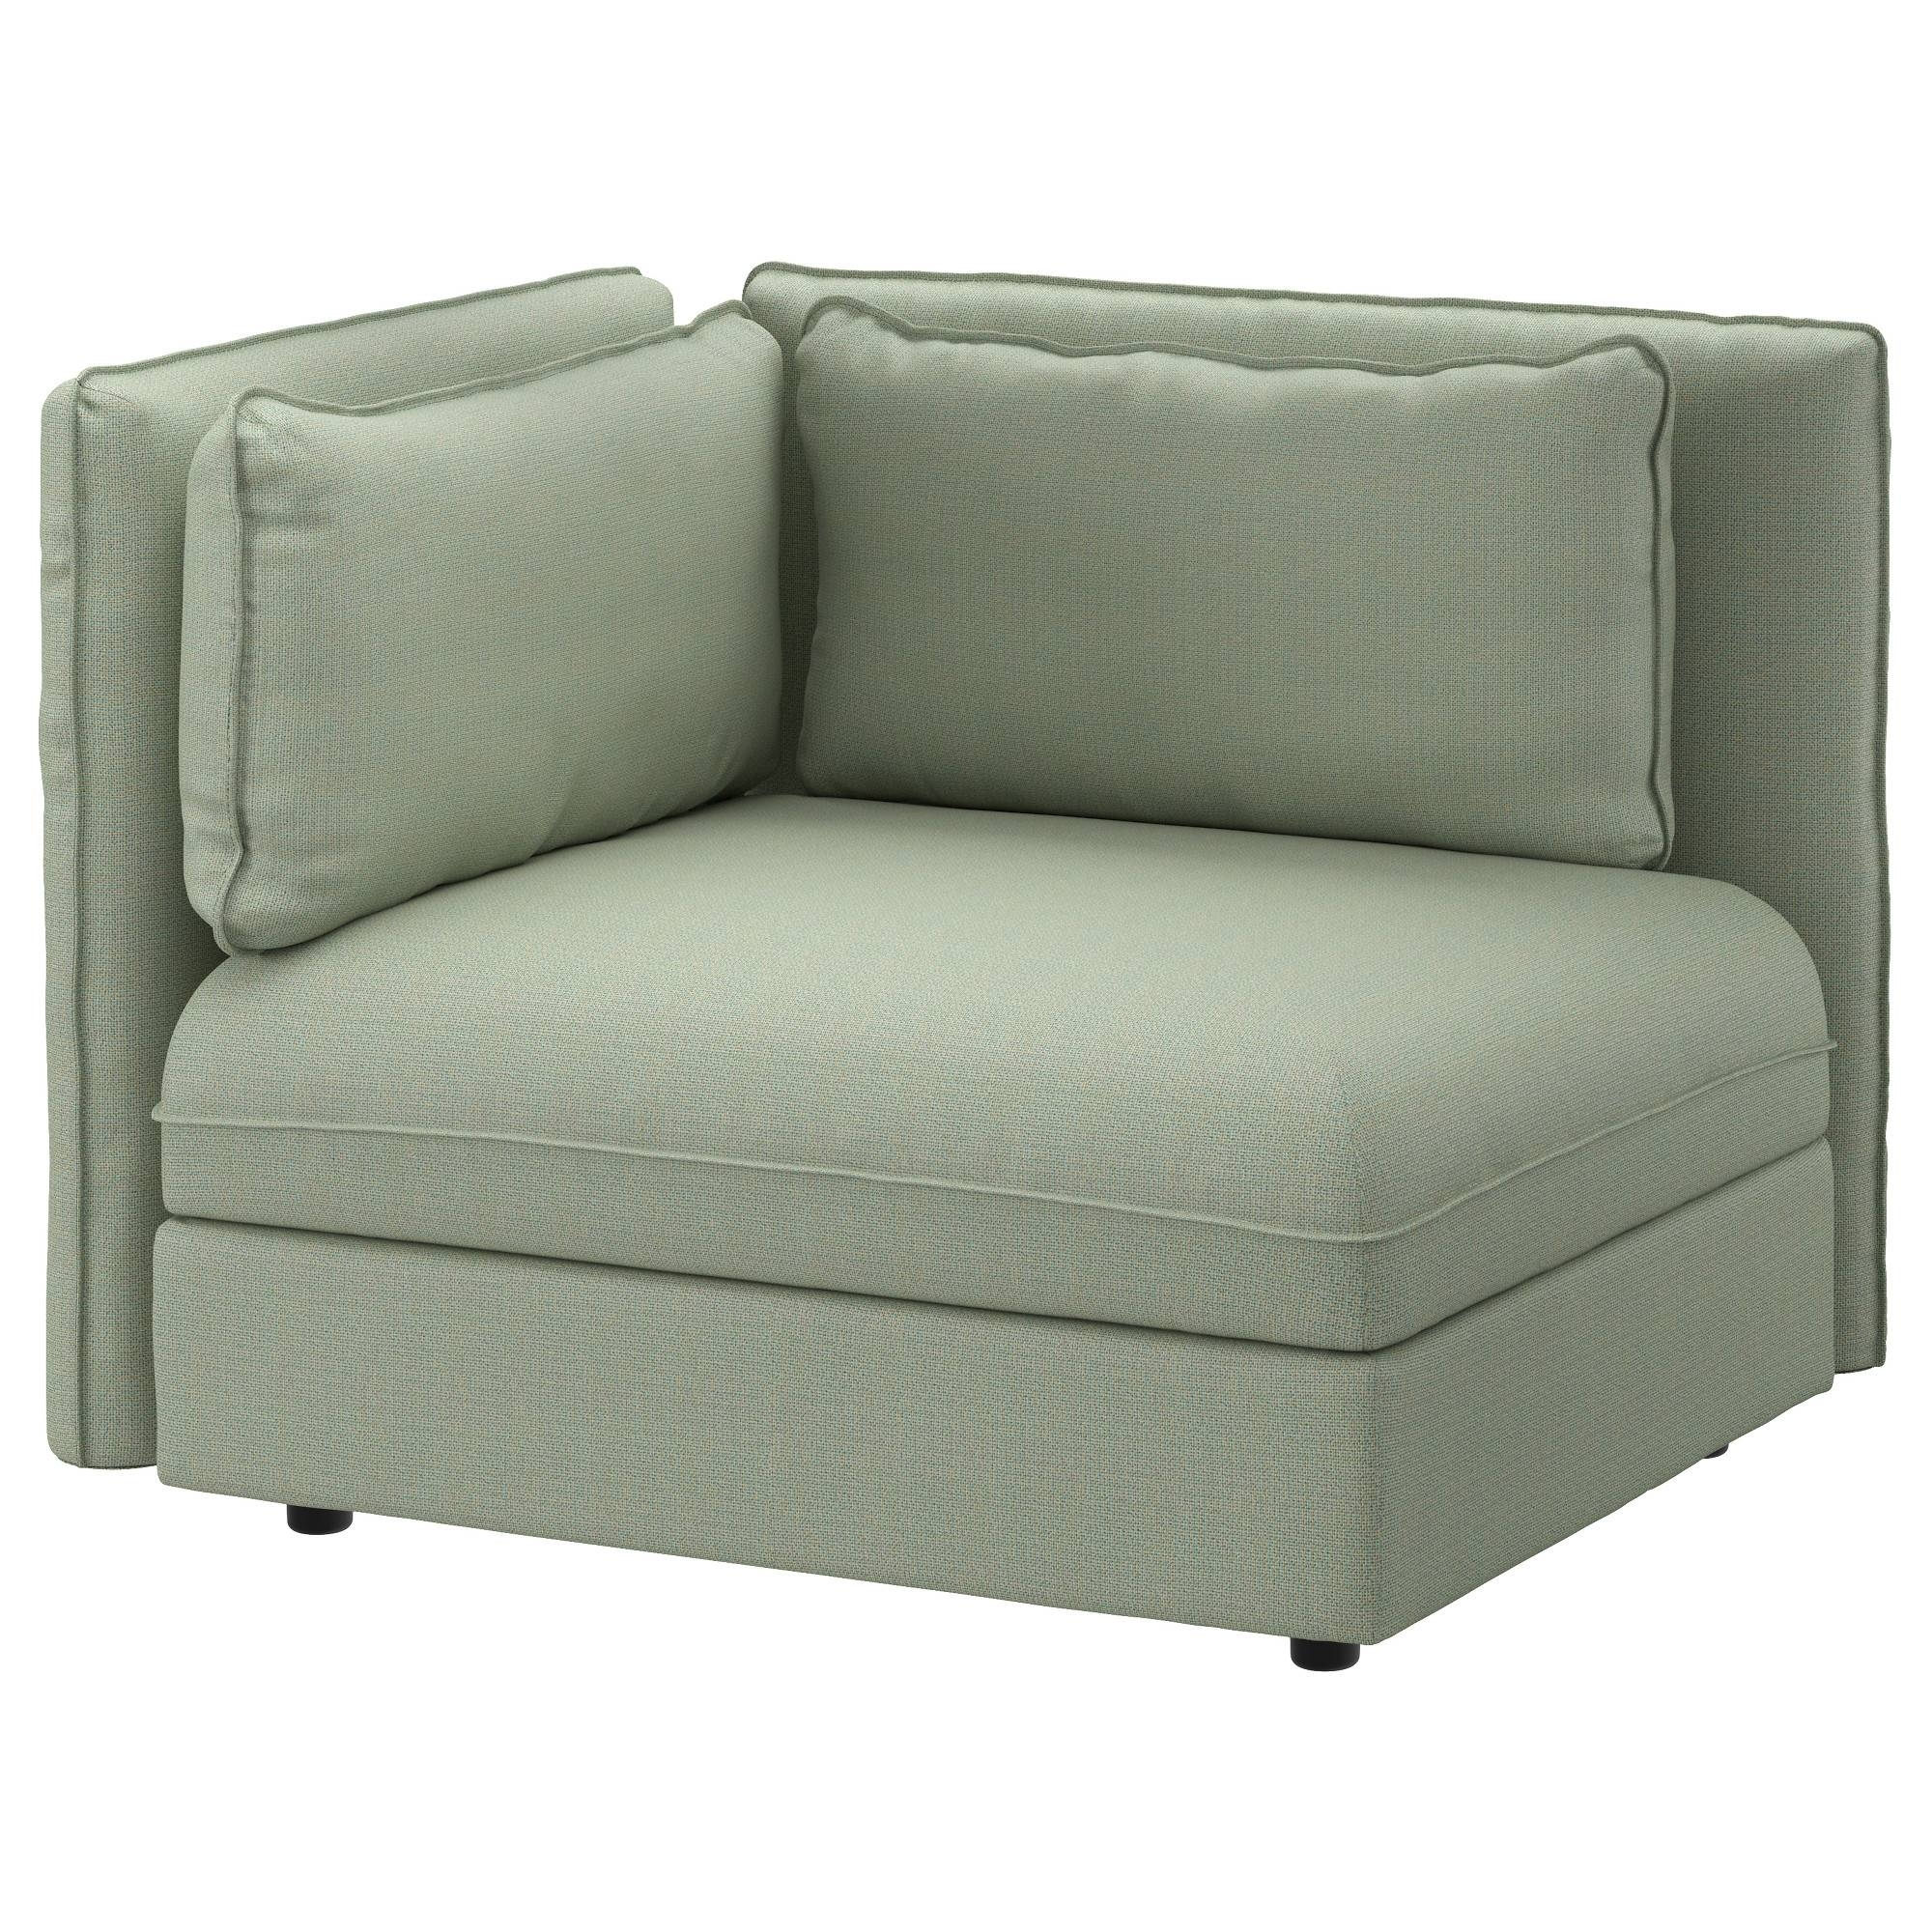 Sectional Sofas & Couches - Ikea pertaining to Green Sectional Sofa (Image 24 of 30)